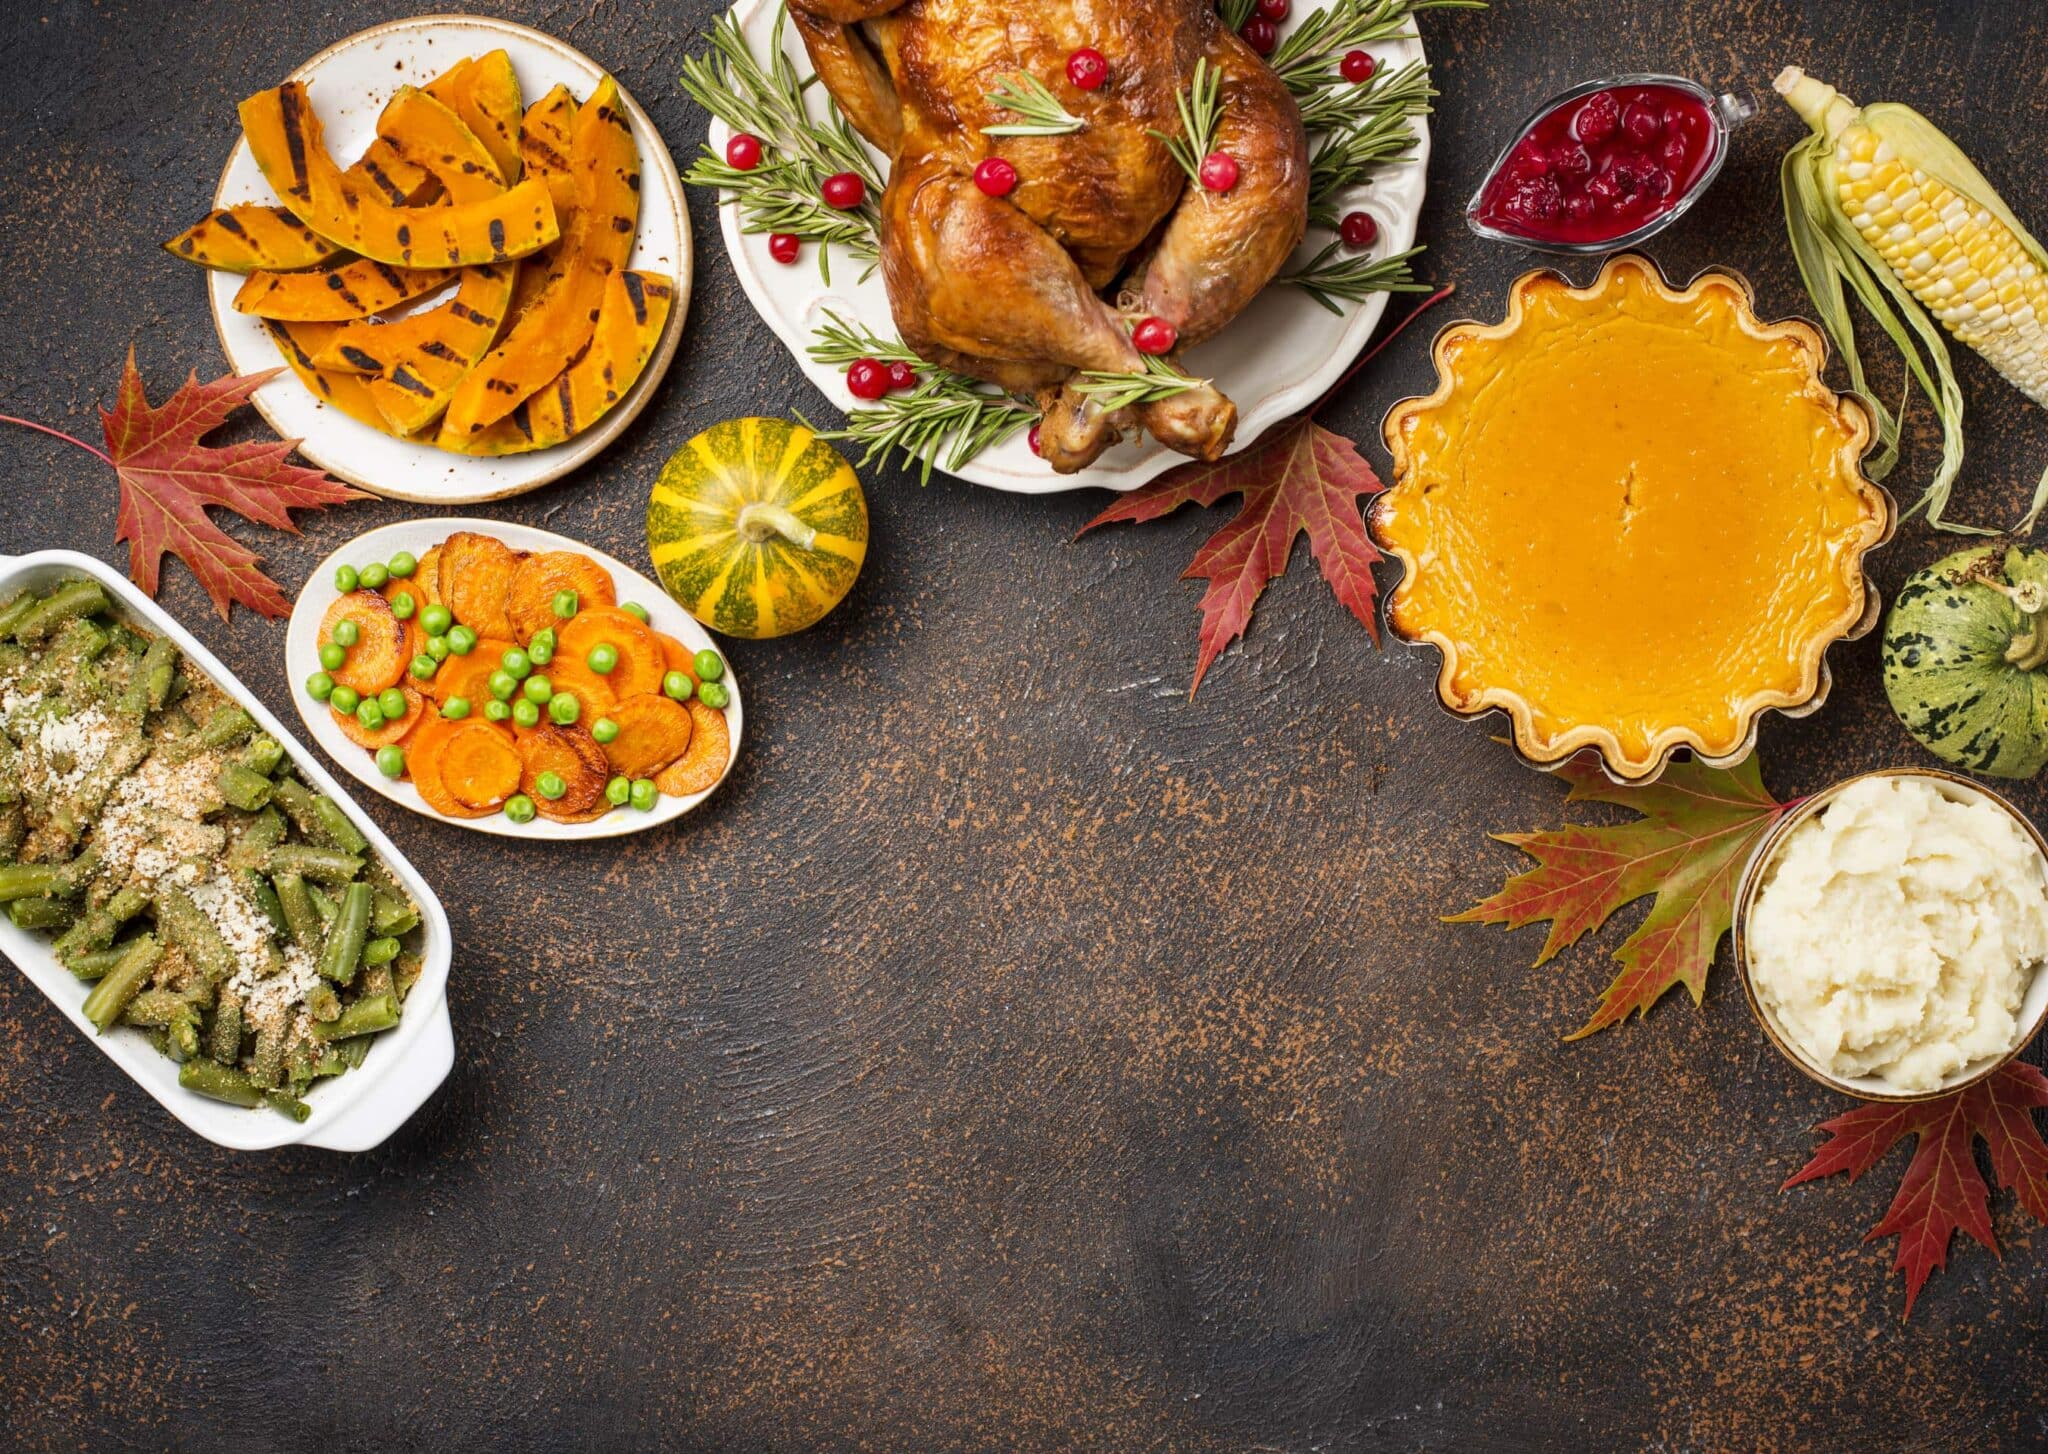 Enter to Win a Turkey Dinner for 4!